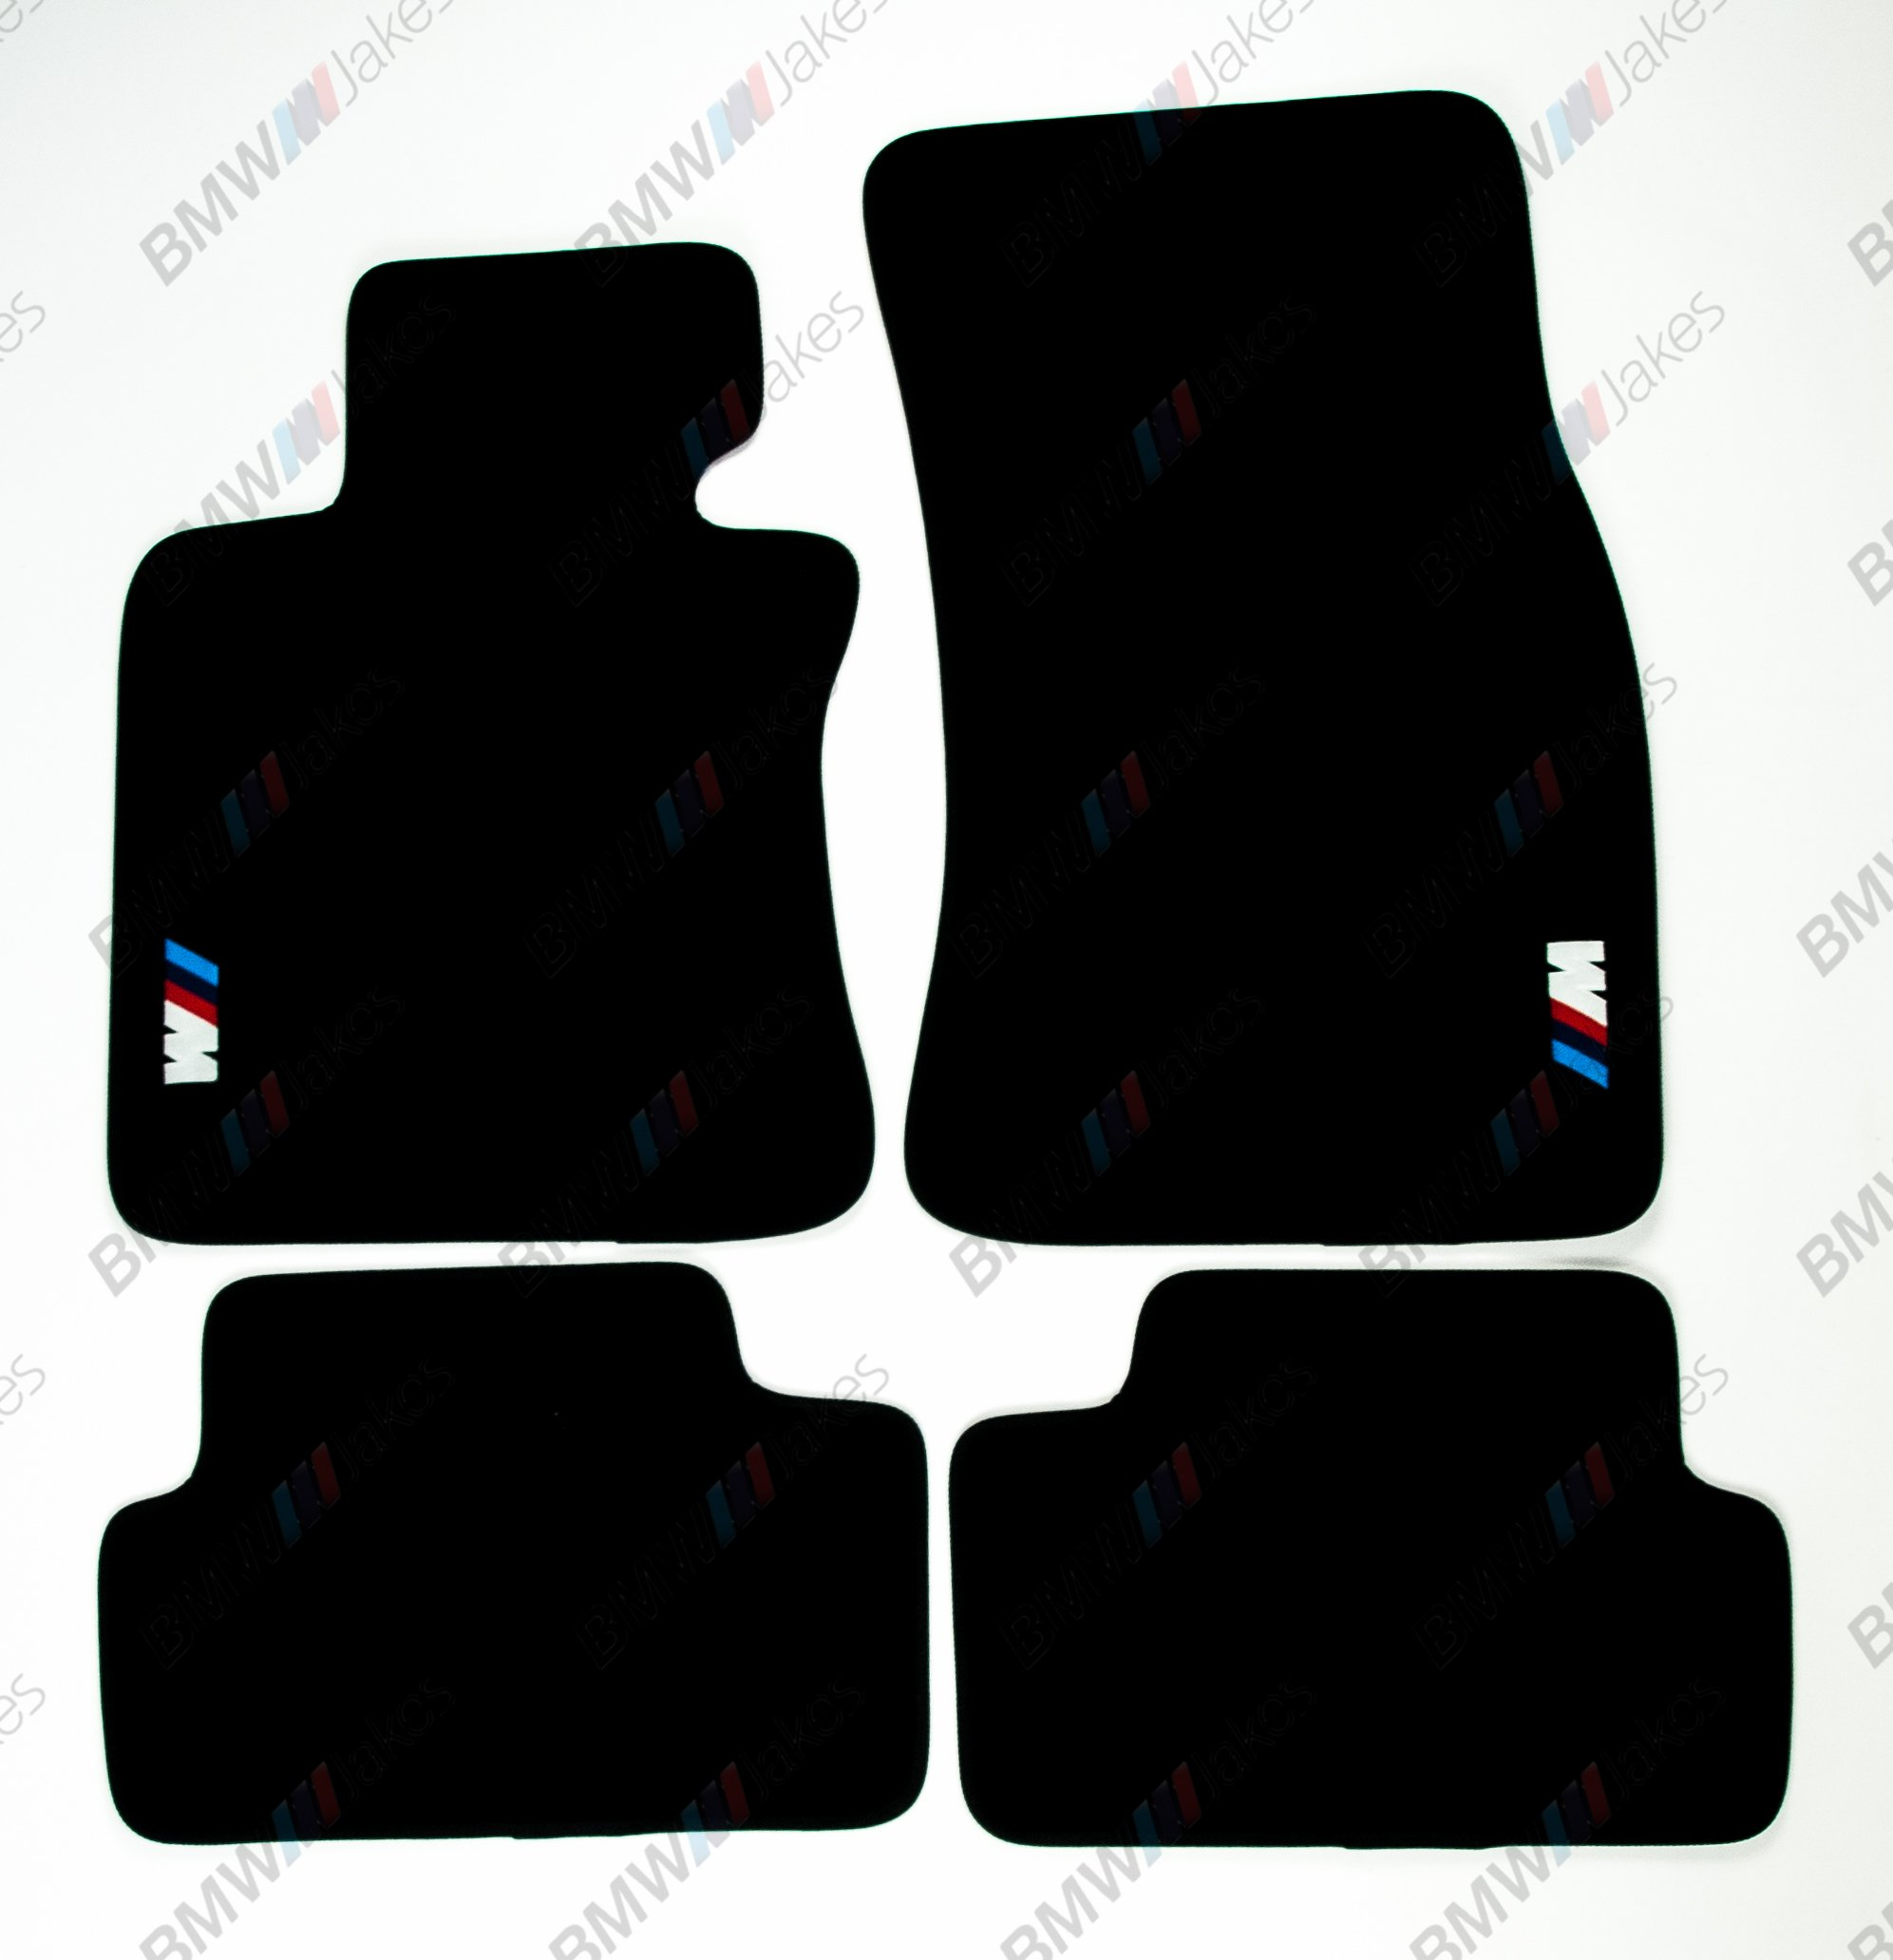 NEW CAR FLOOR MATS BLACK with ///M EMBLEM for BMW 6 series E63 by VOPI MATS (Image #1)